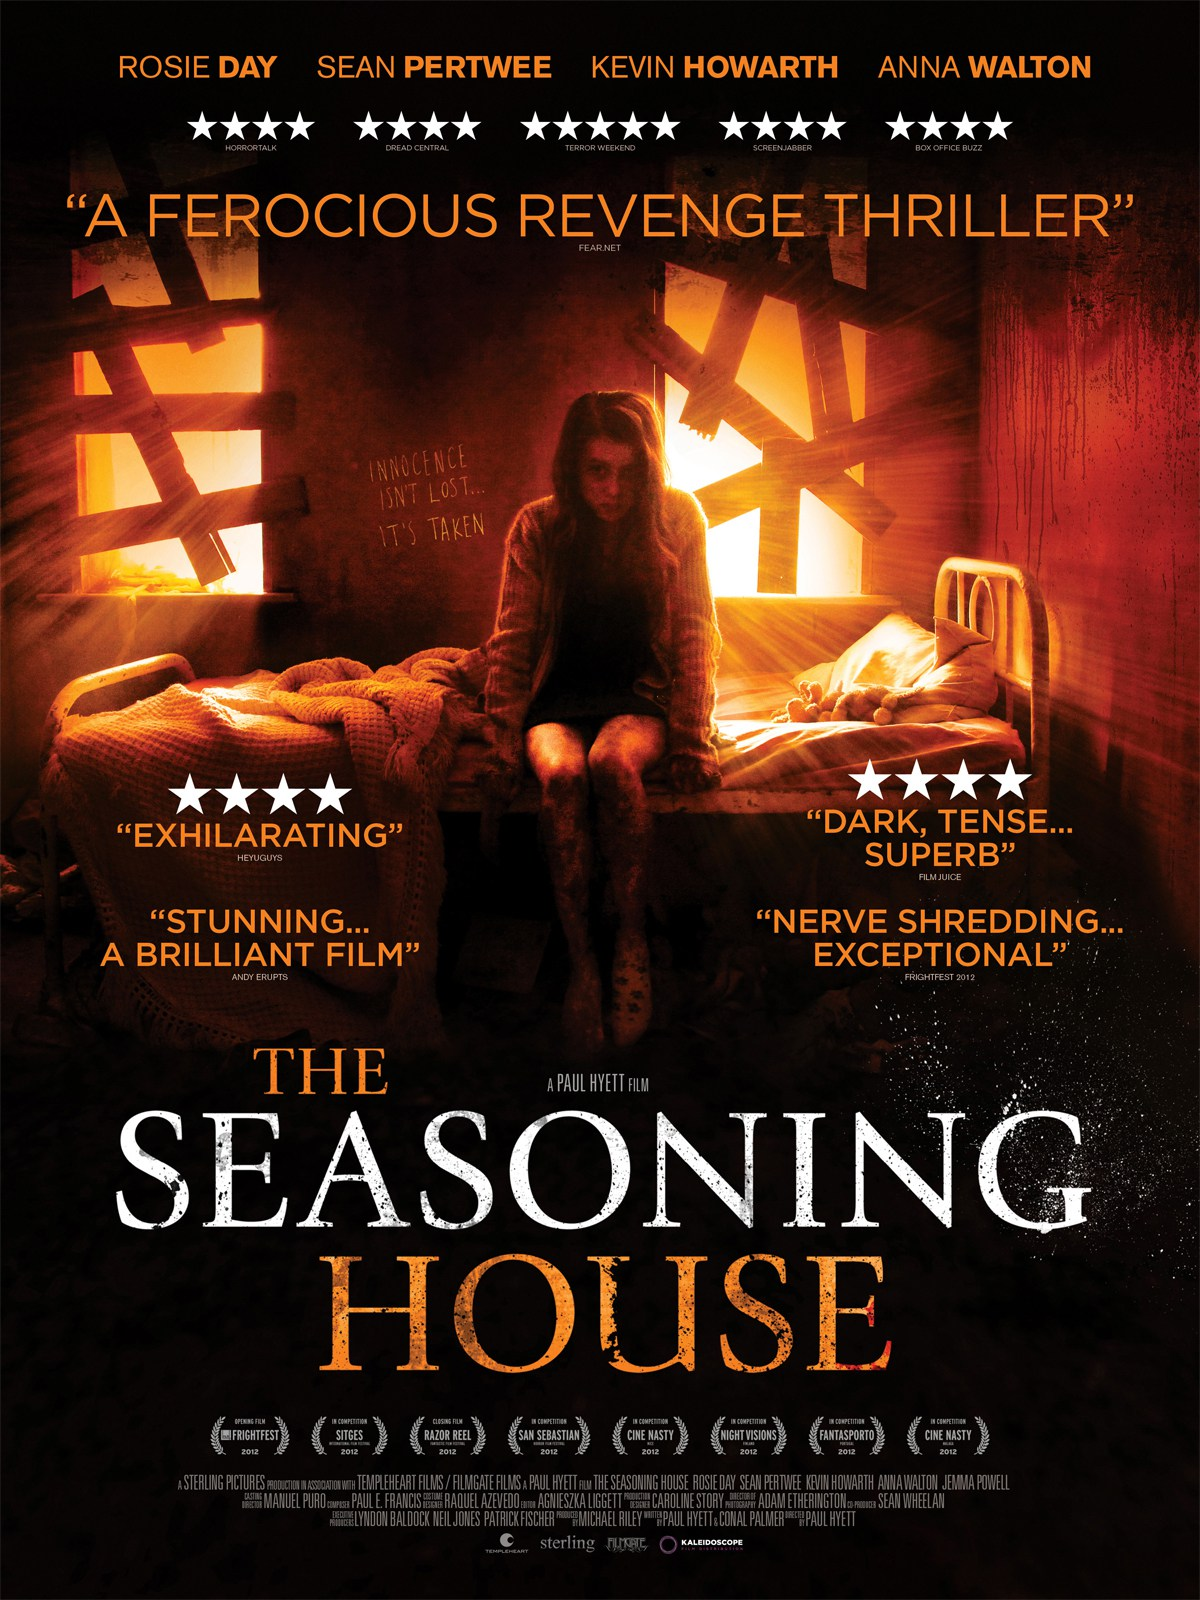 Copy of The Seasoning House